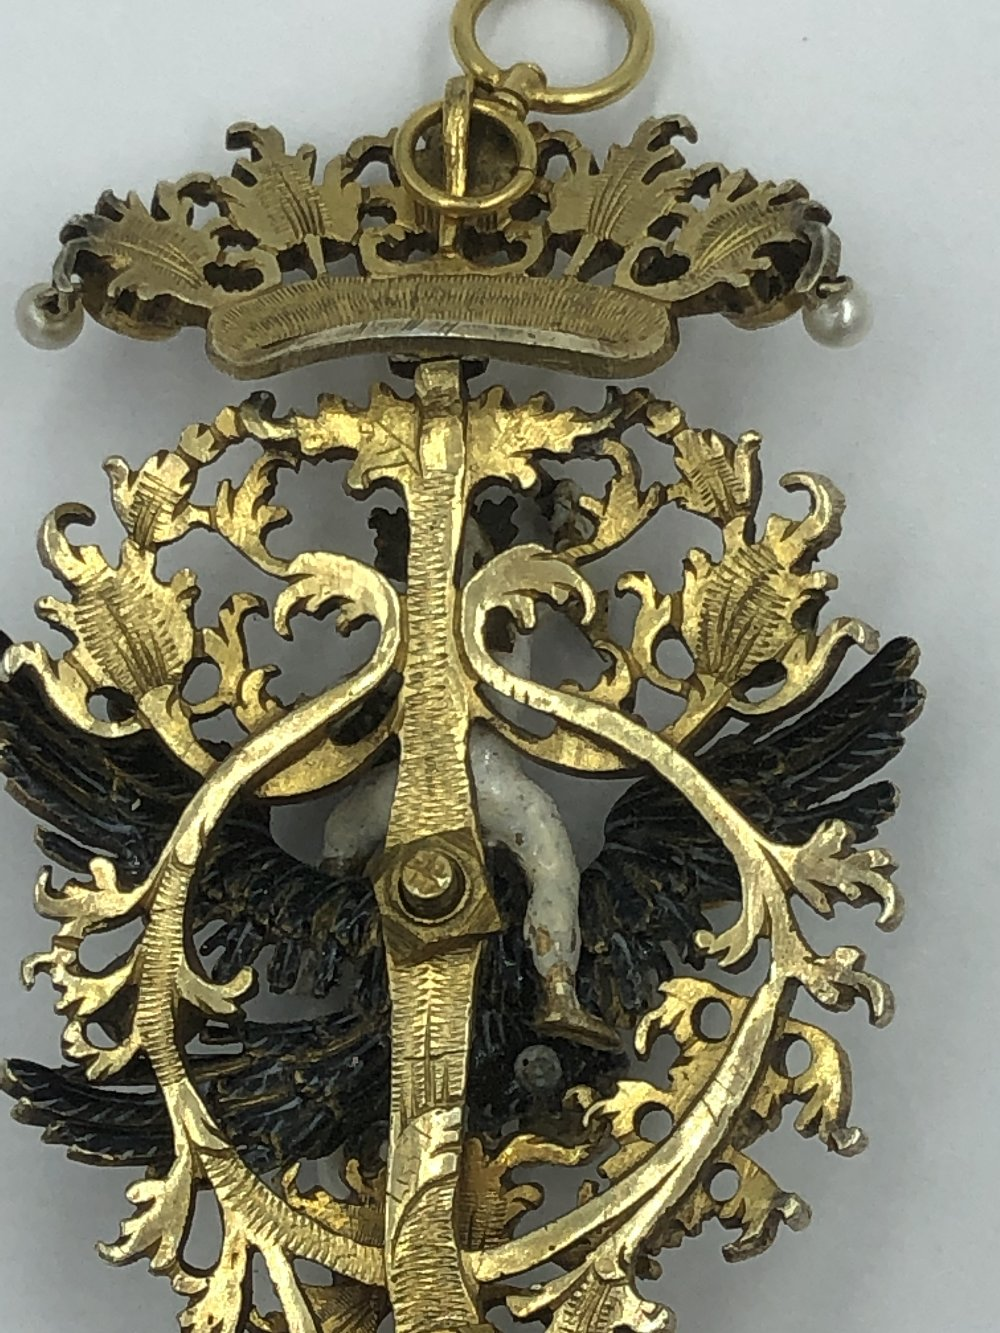 Lot 29 - NO ONLINE BIDDING LOTS 1-30. Late C17/18th (early) pendant with enamel figure of Zeus